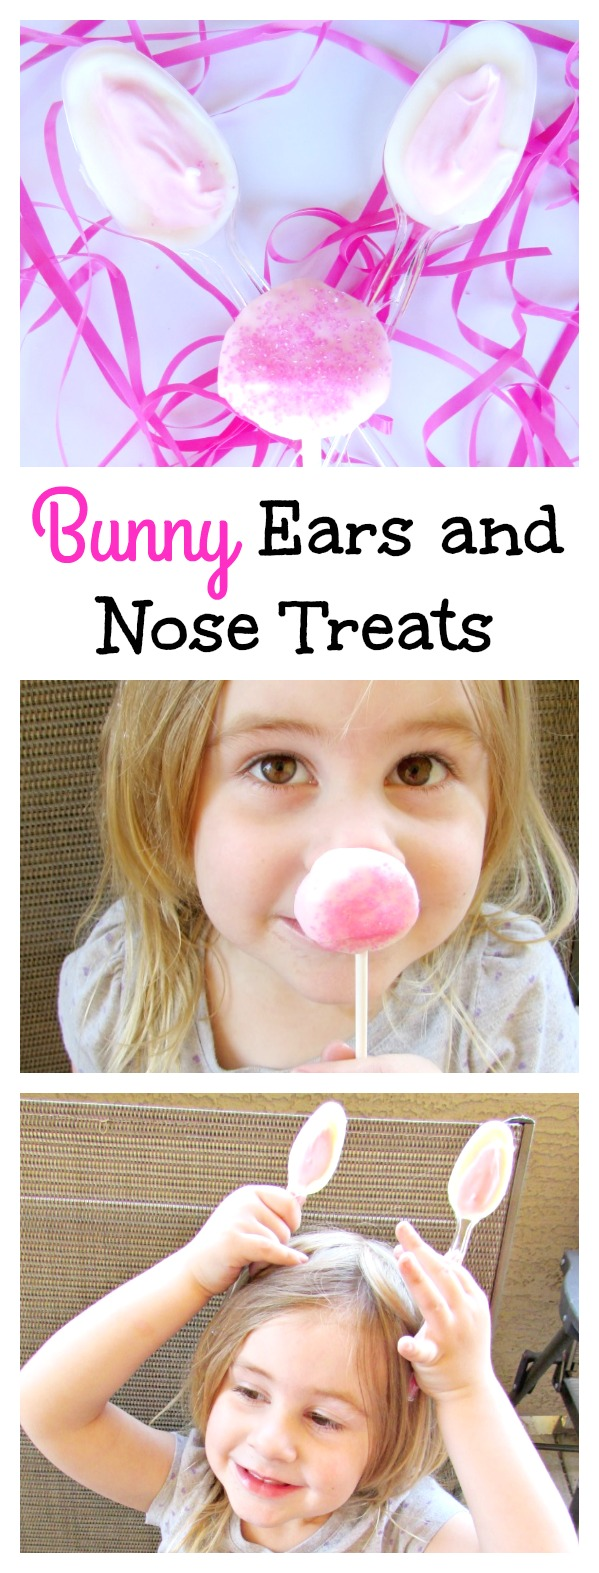 Bunny Ears and Nose Treats